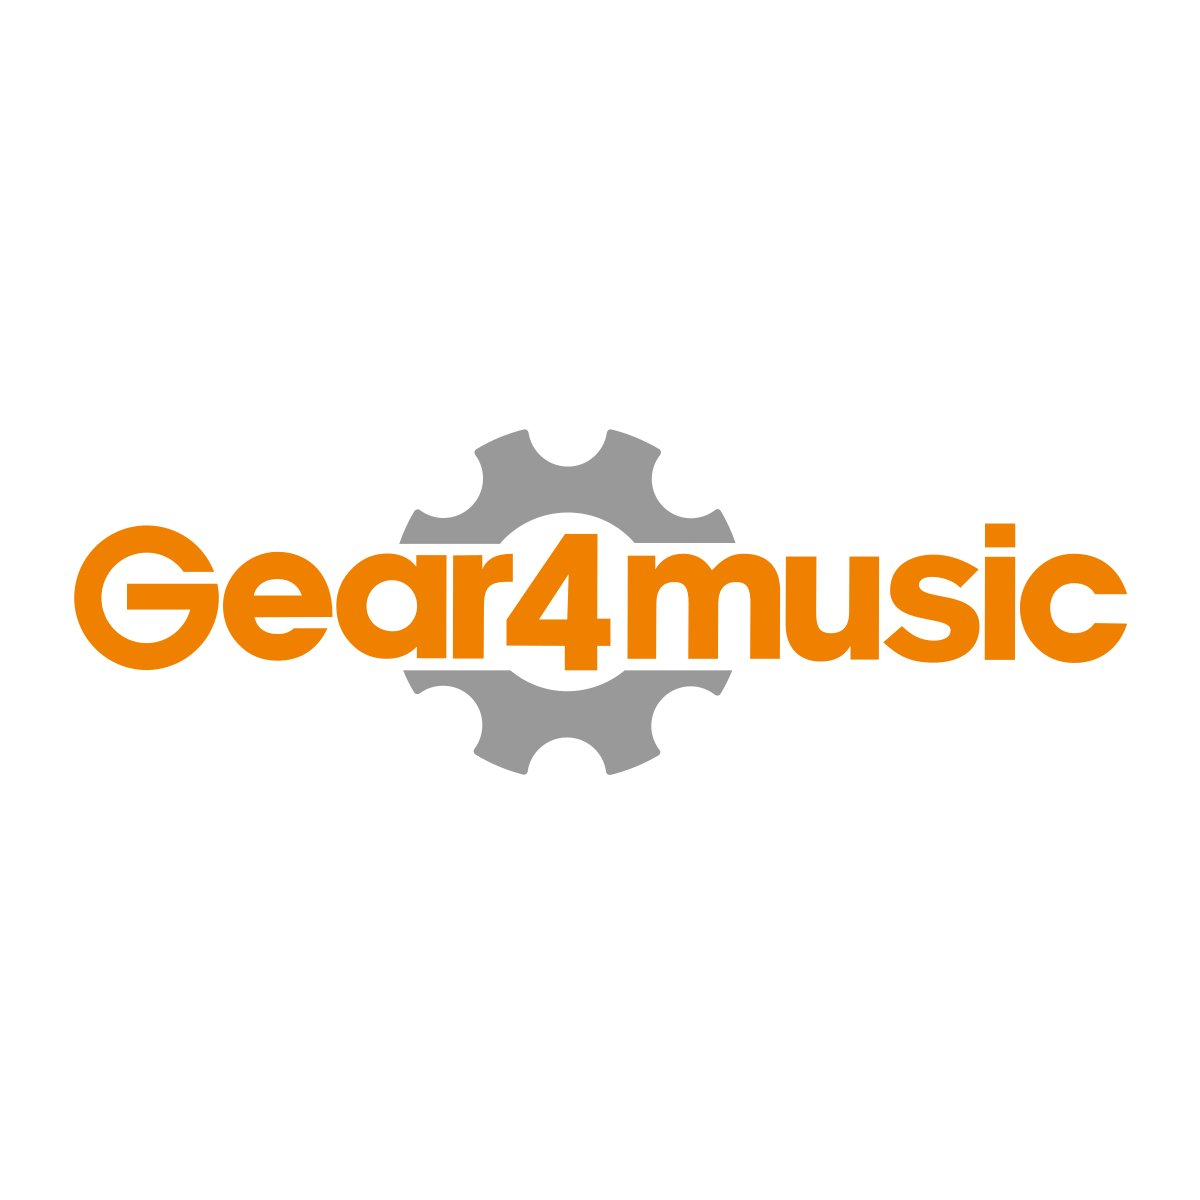 Einstellbare Keyboard-/Pianobank von Gear4music